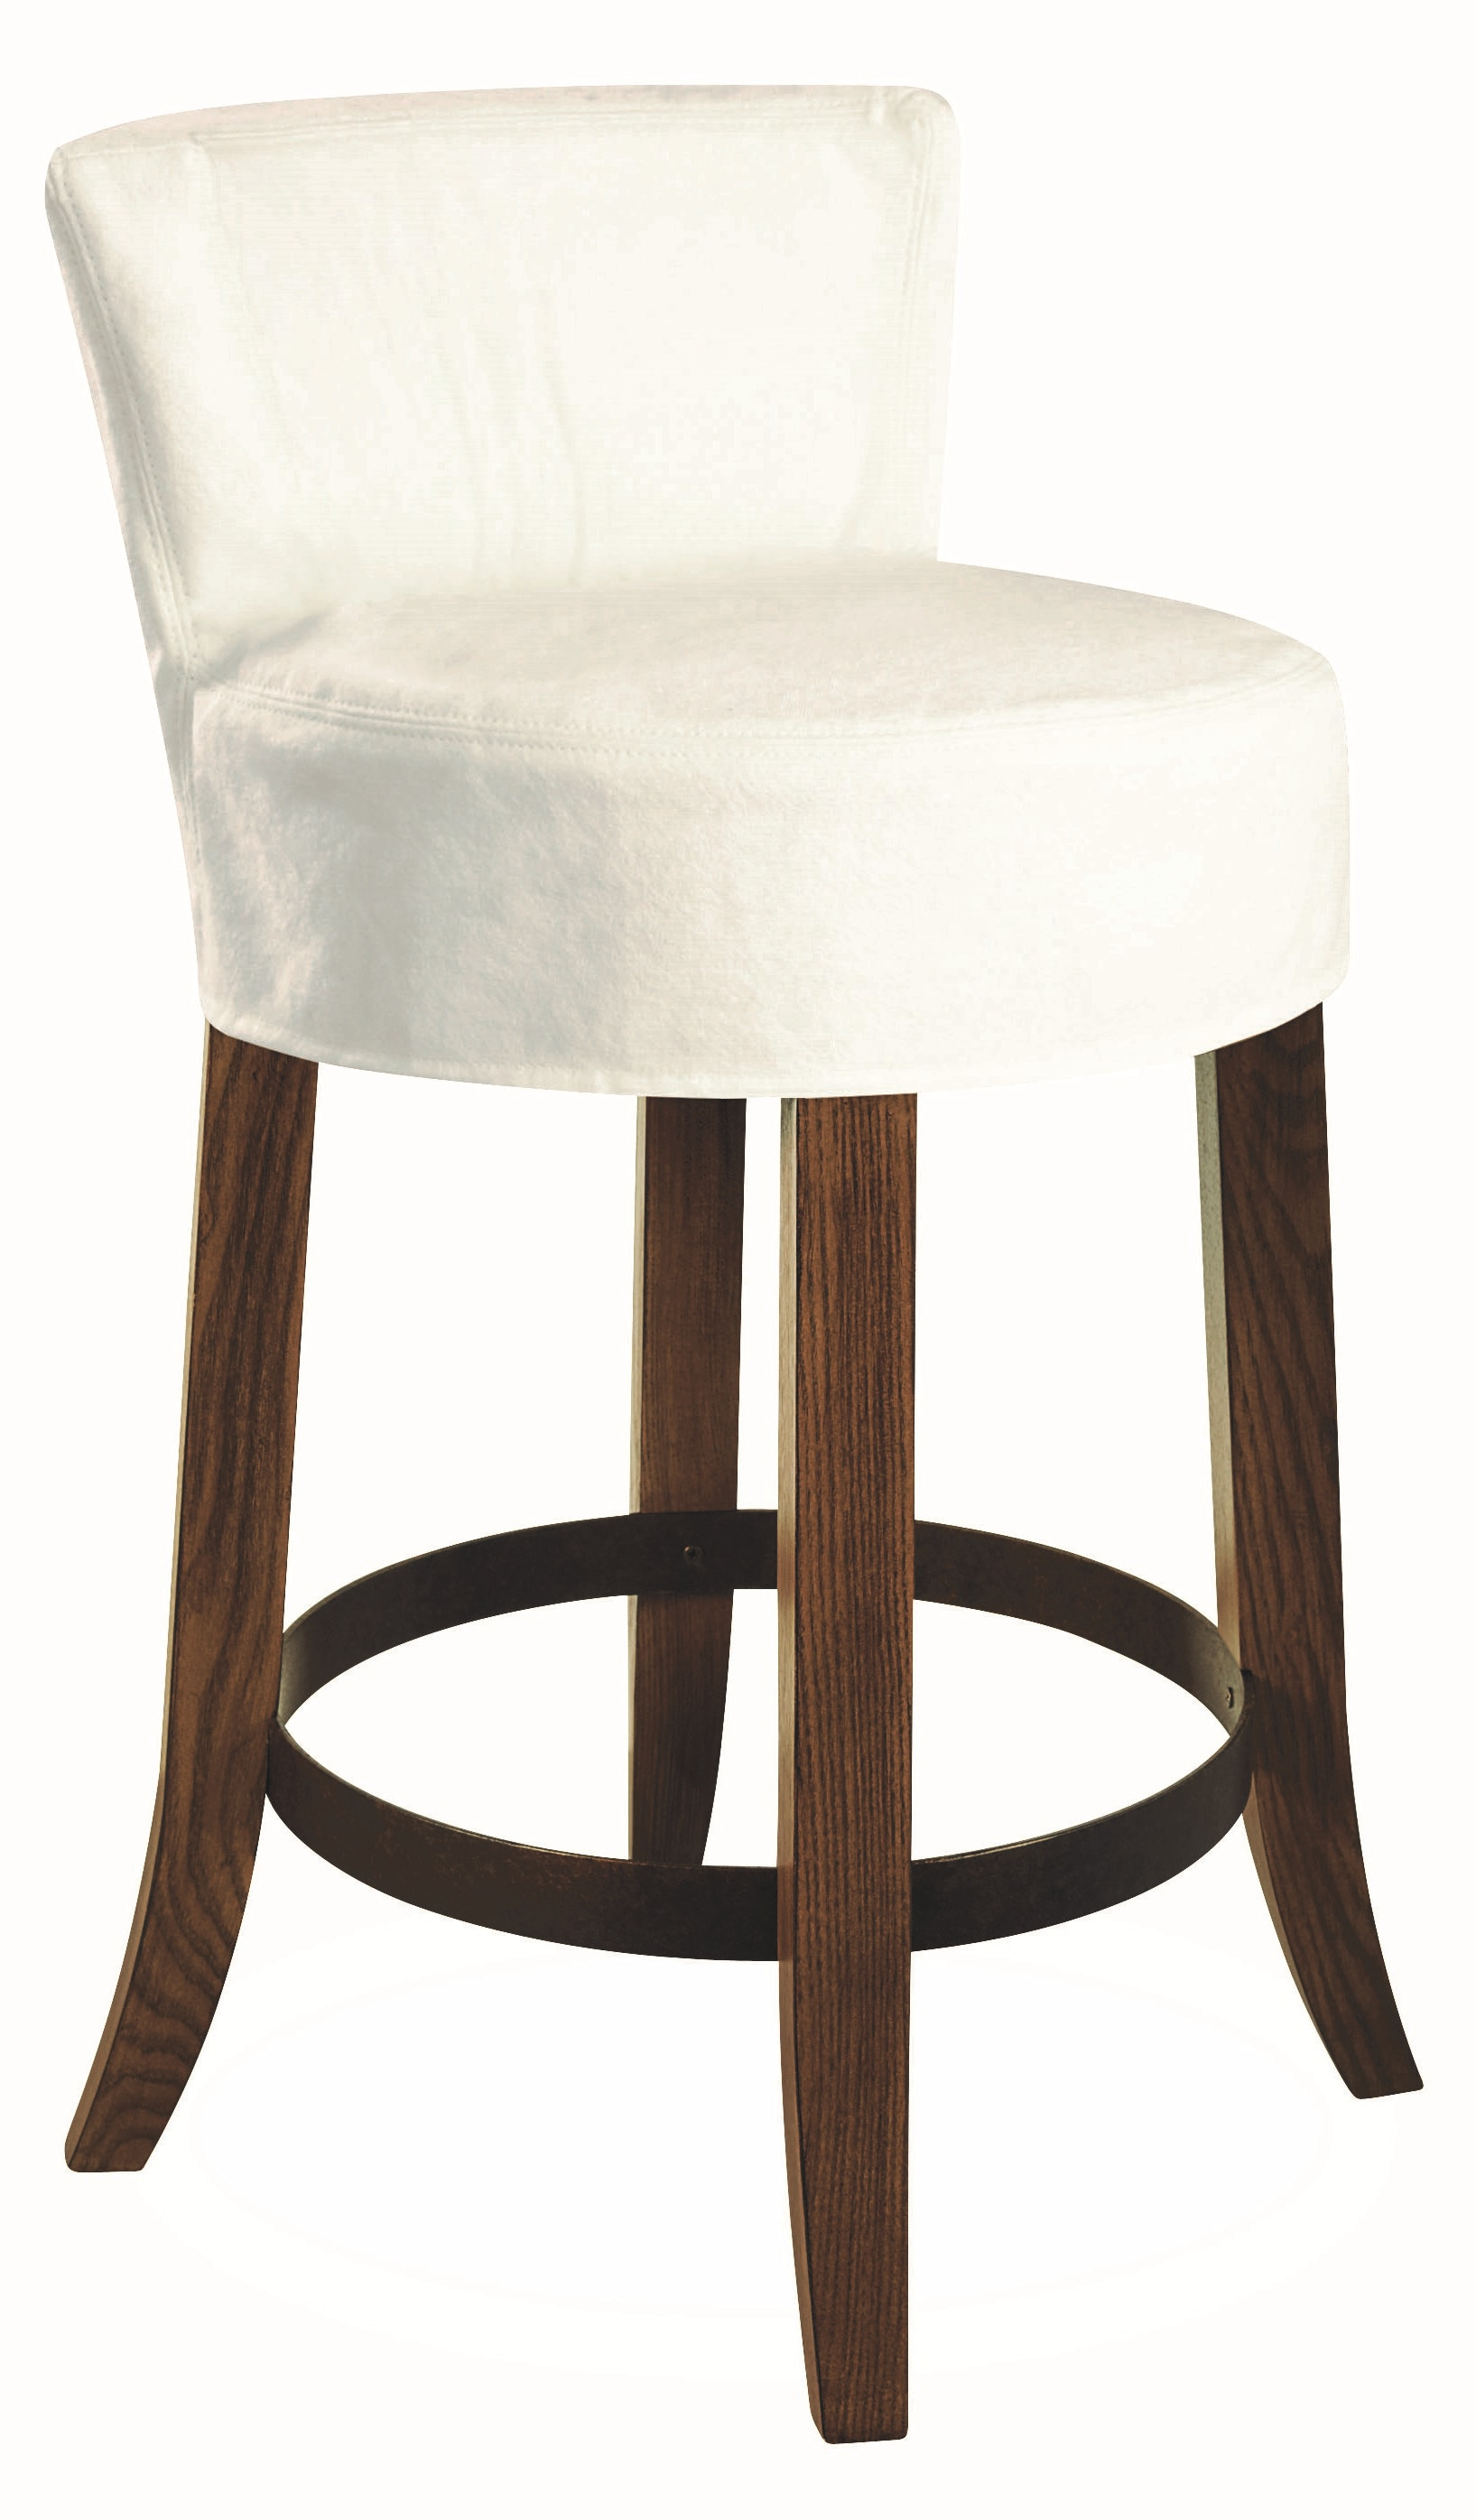 slipcovered counter stools. Lee Industries Slipcovered Swivel Counter Stool C5983-51SW Stools S